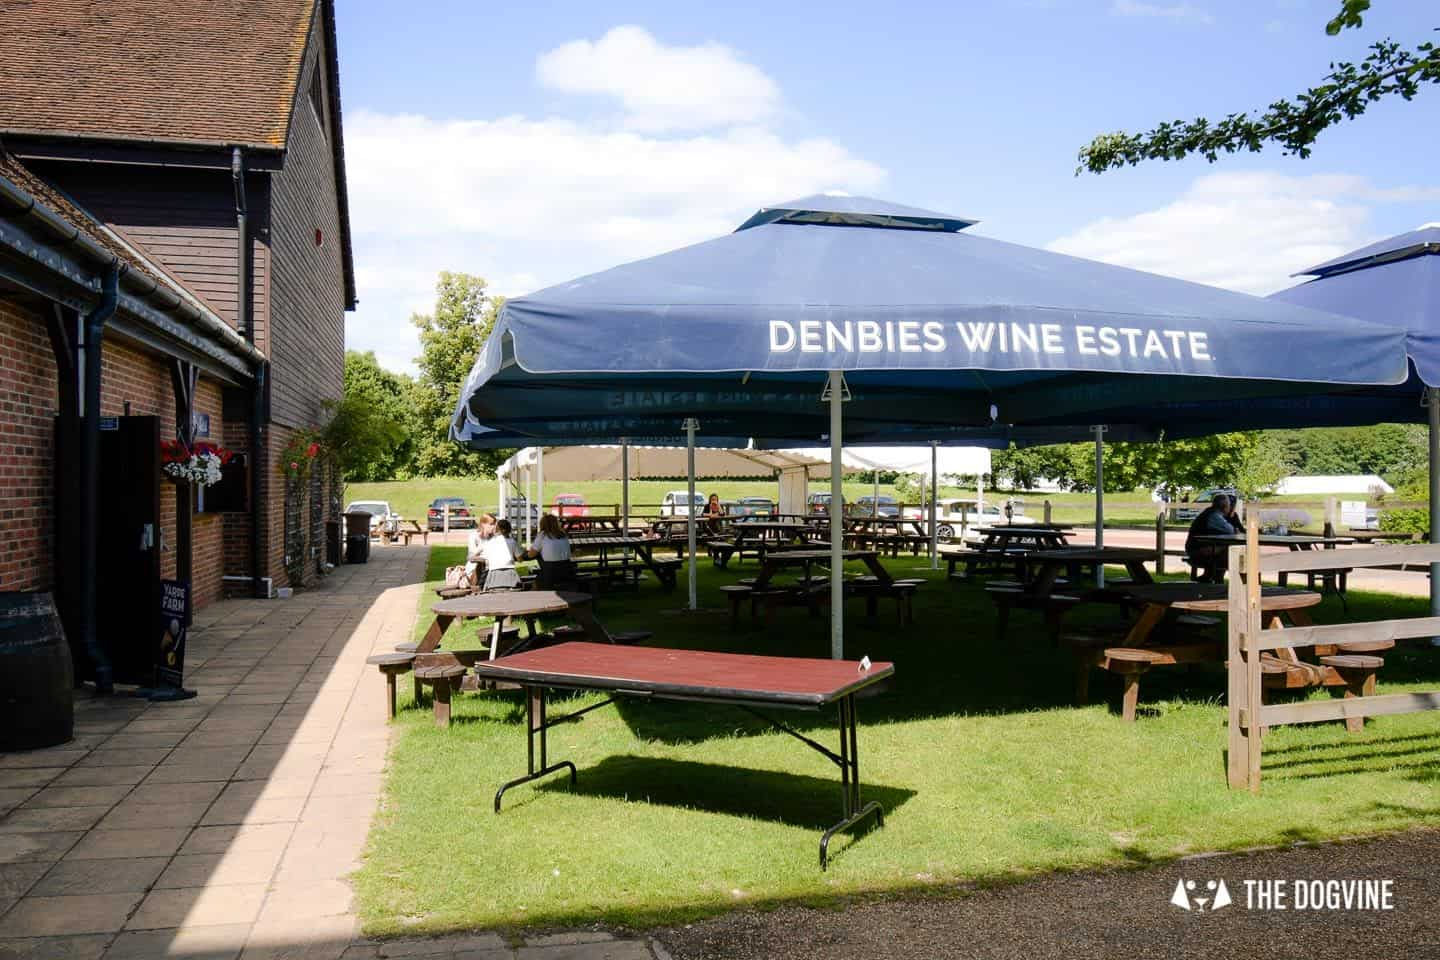 Denbies Dog-friendly Vineyard | A Delightful Day Out 13